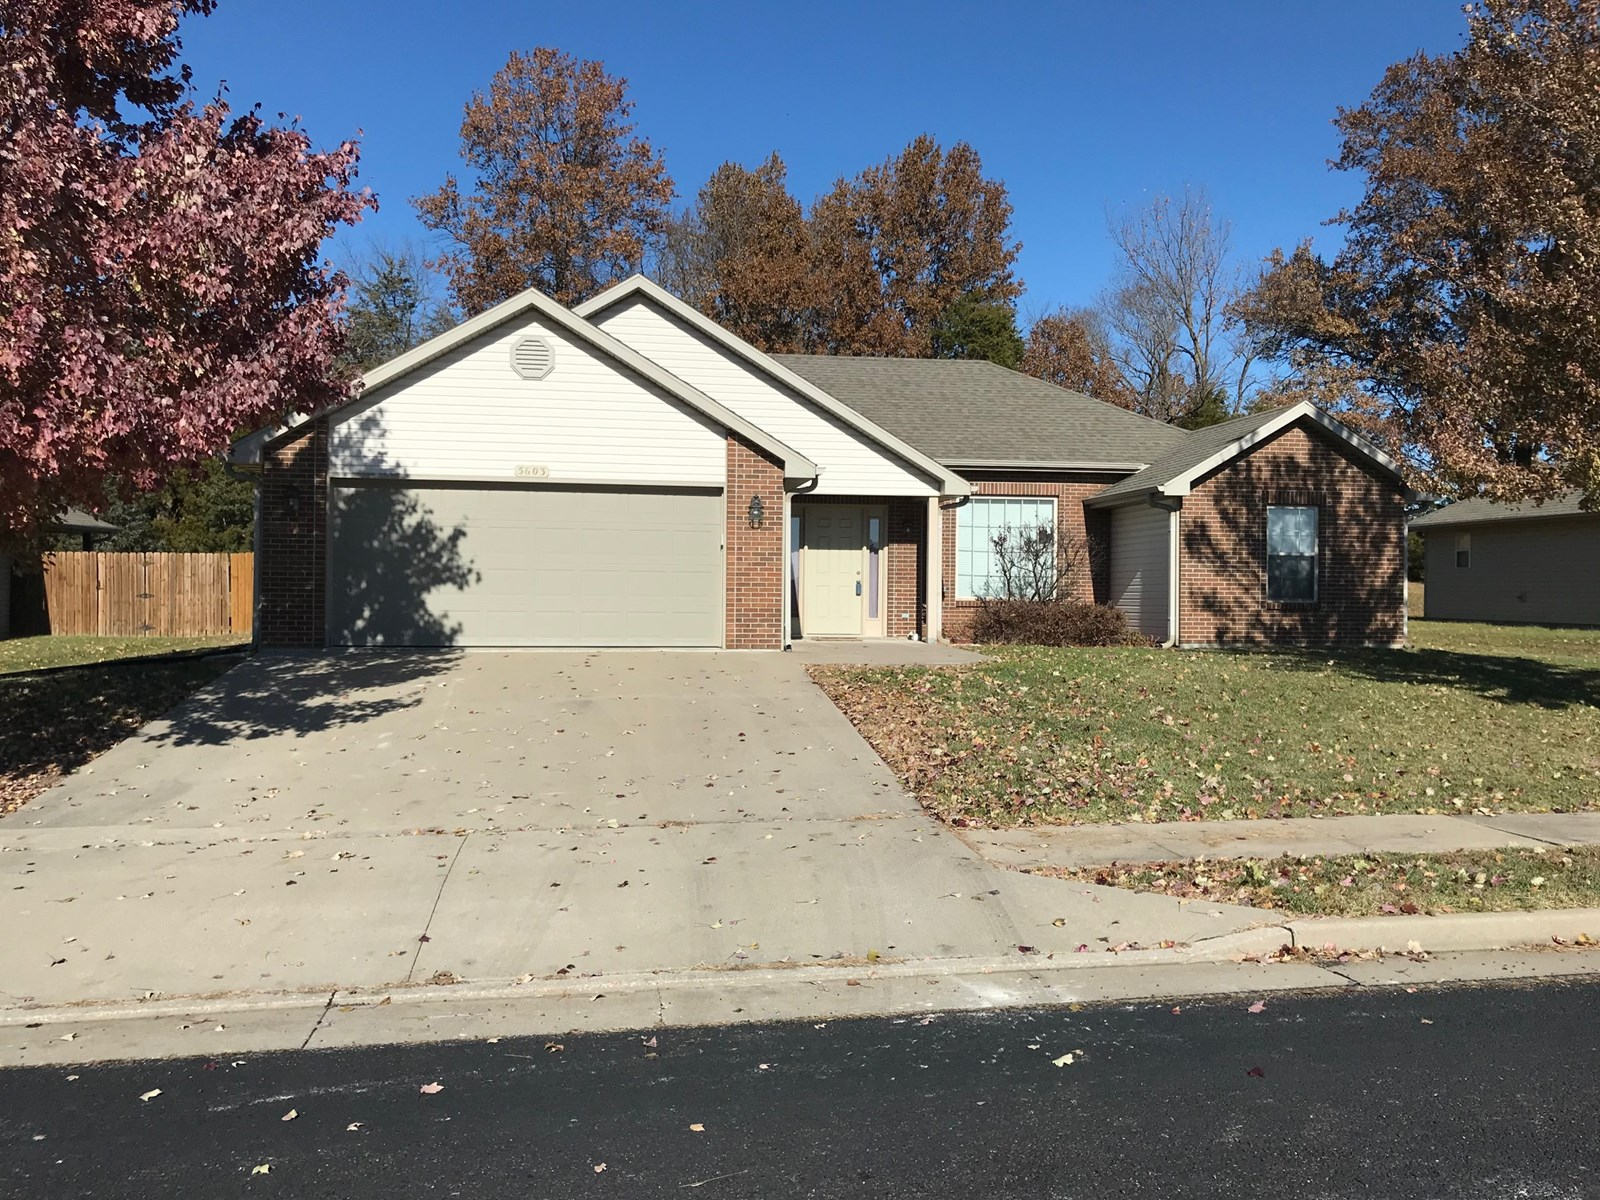 3 BR, 2 BA, 2 Car Garage near Battle High, Columbia MO